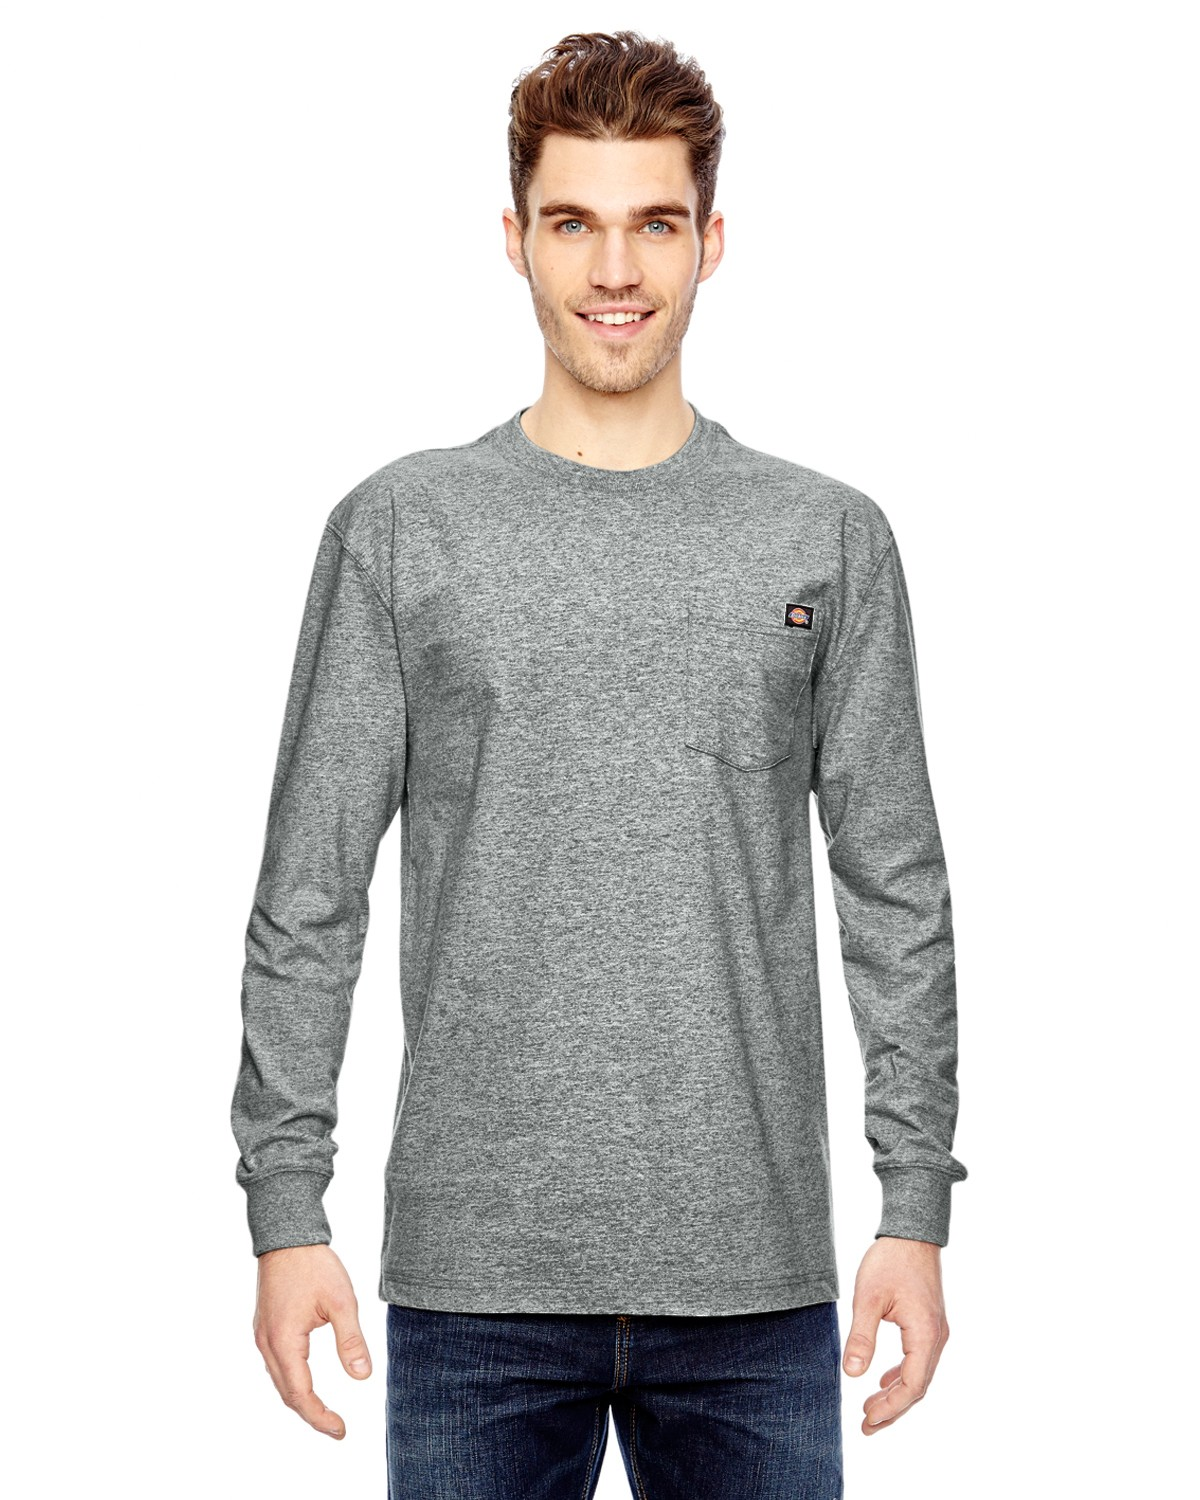 WL450 Dickies HEATHER GREY